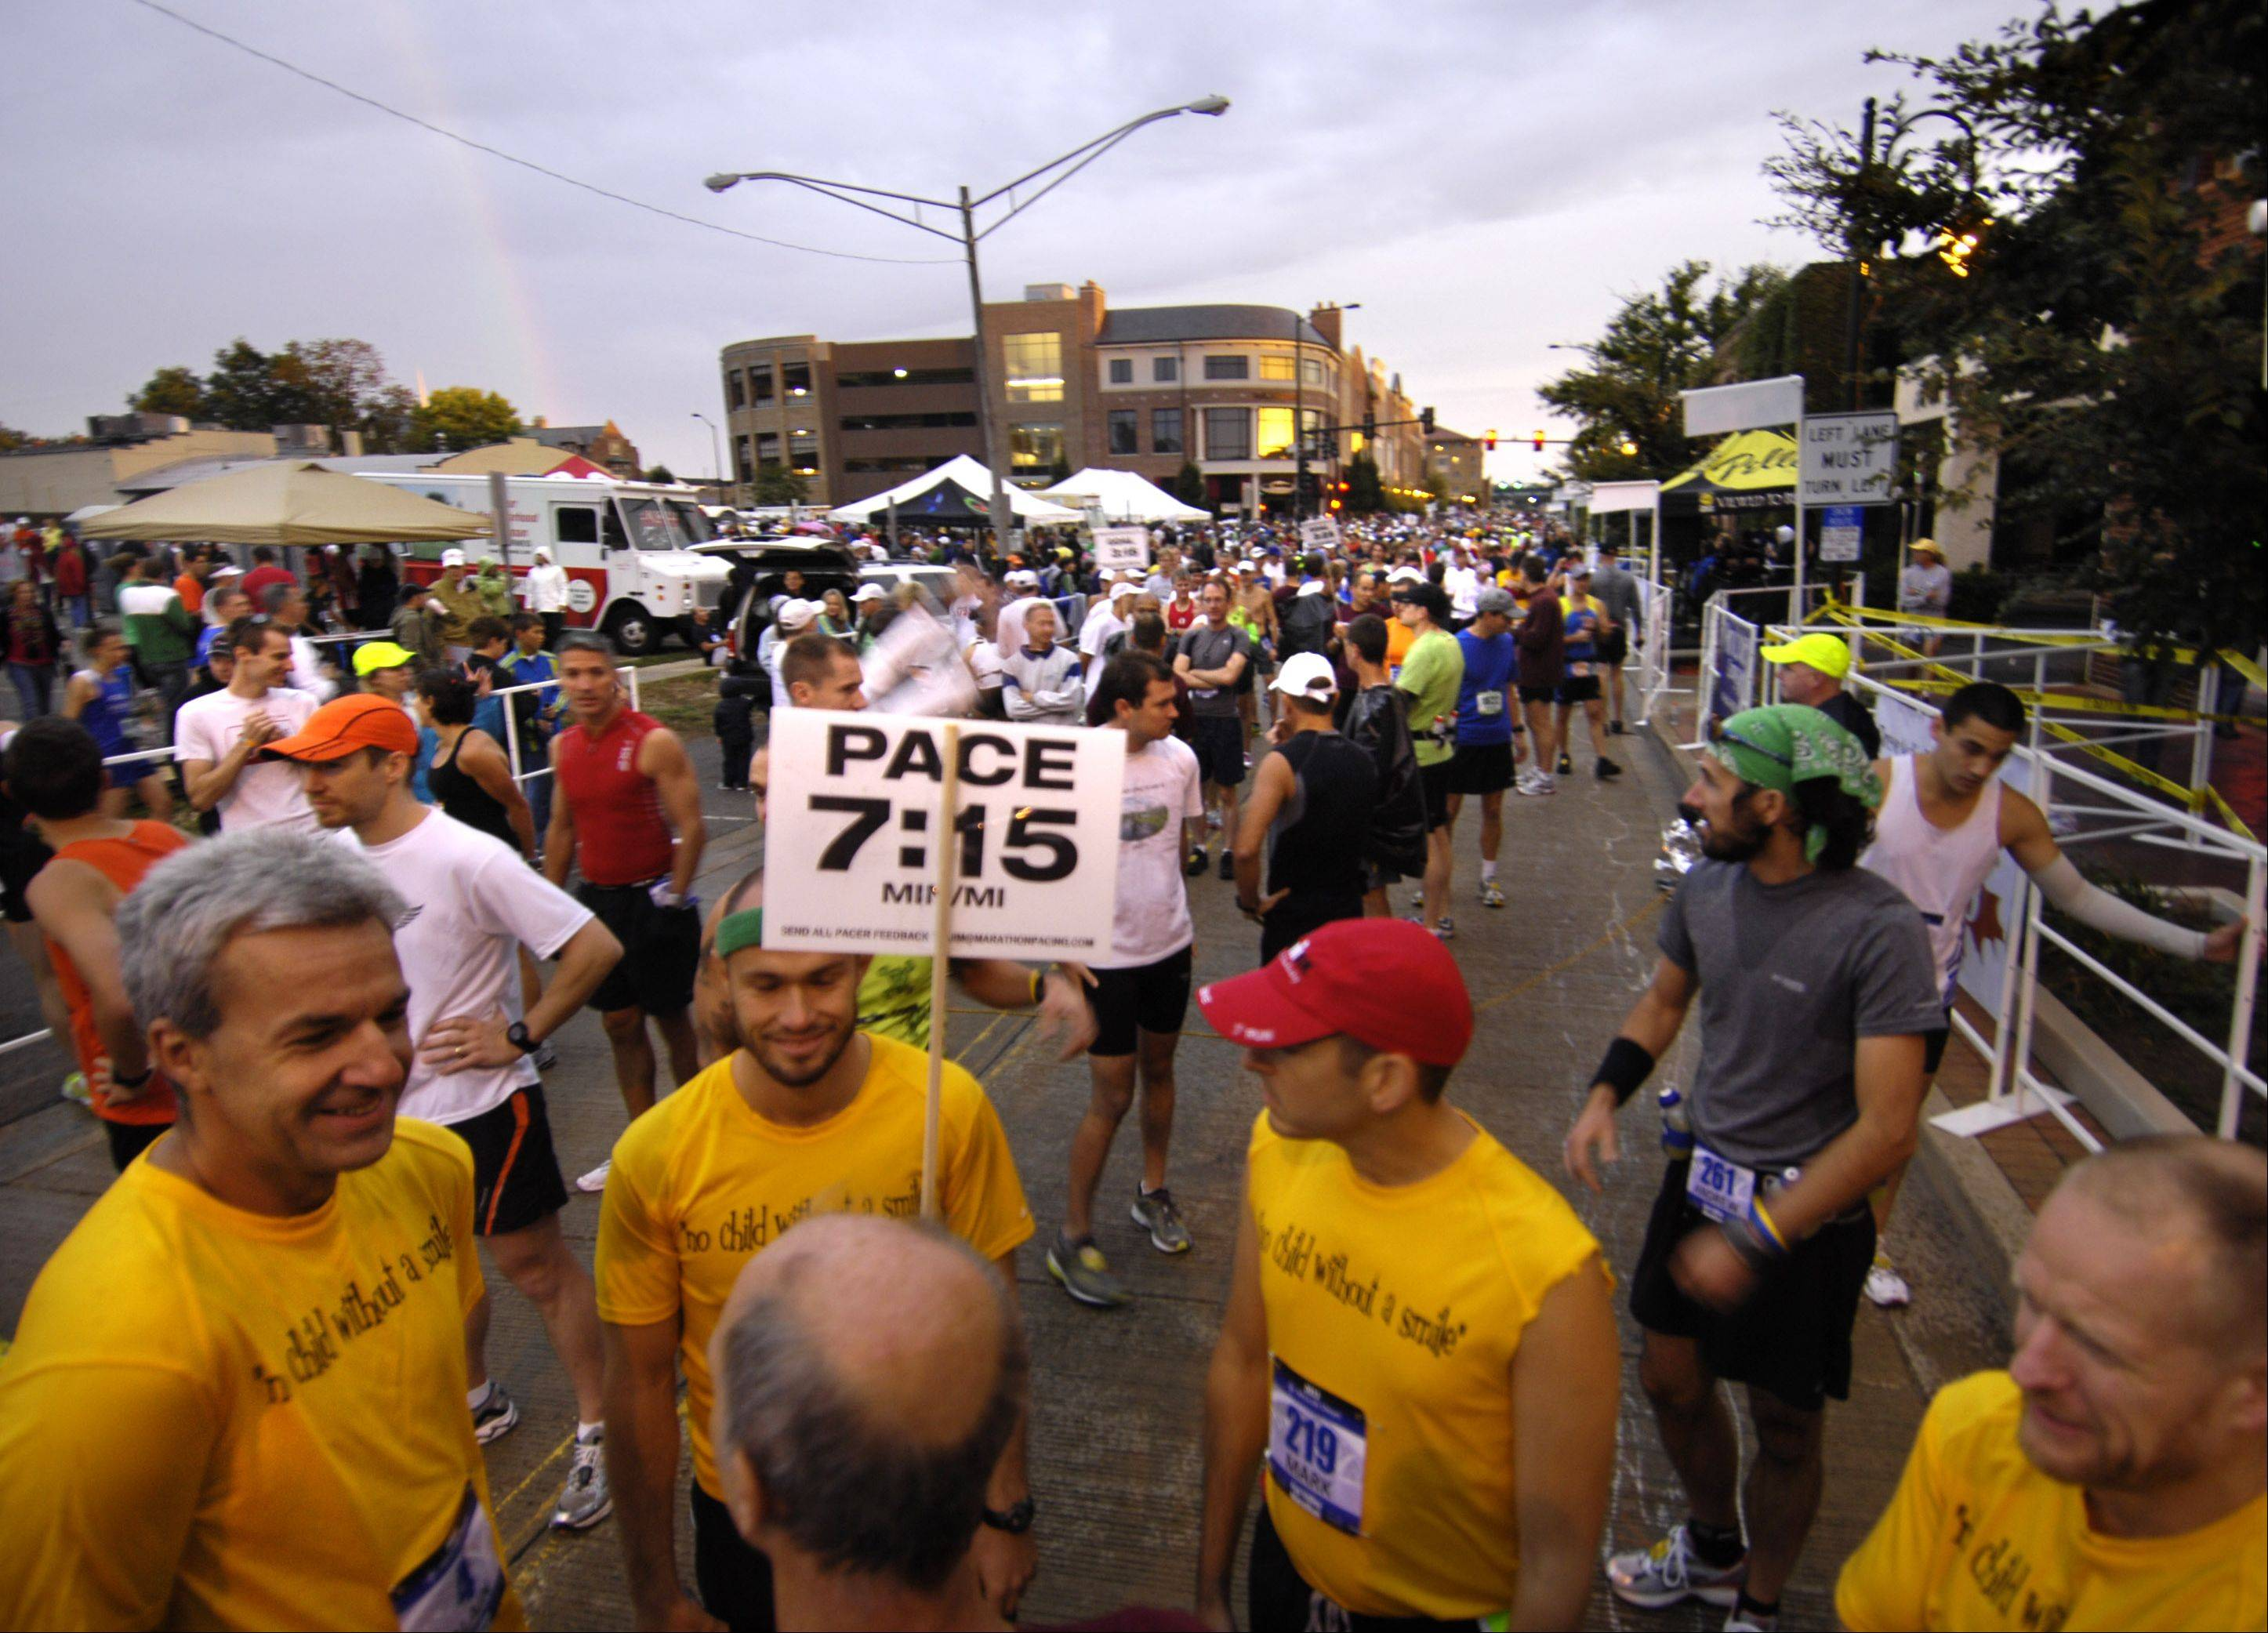 Runners start to gather near the finish line before last year's Fox Valley Marathon Races in St. Charles. More than 2,000 competitors ran a half marathon, a 20 mile race, and a full 26.2 mile marathon, as well as a kid's race. Eventual marathon winner Tim Cunningham of Virginia is at lower left, partly obscured by the sign. He ran the entire race in bare feet.